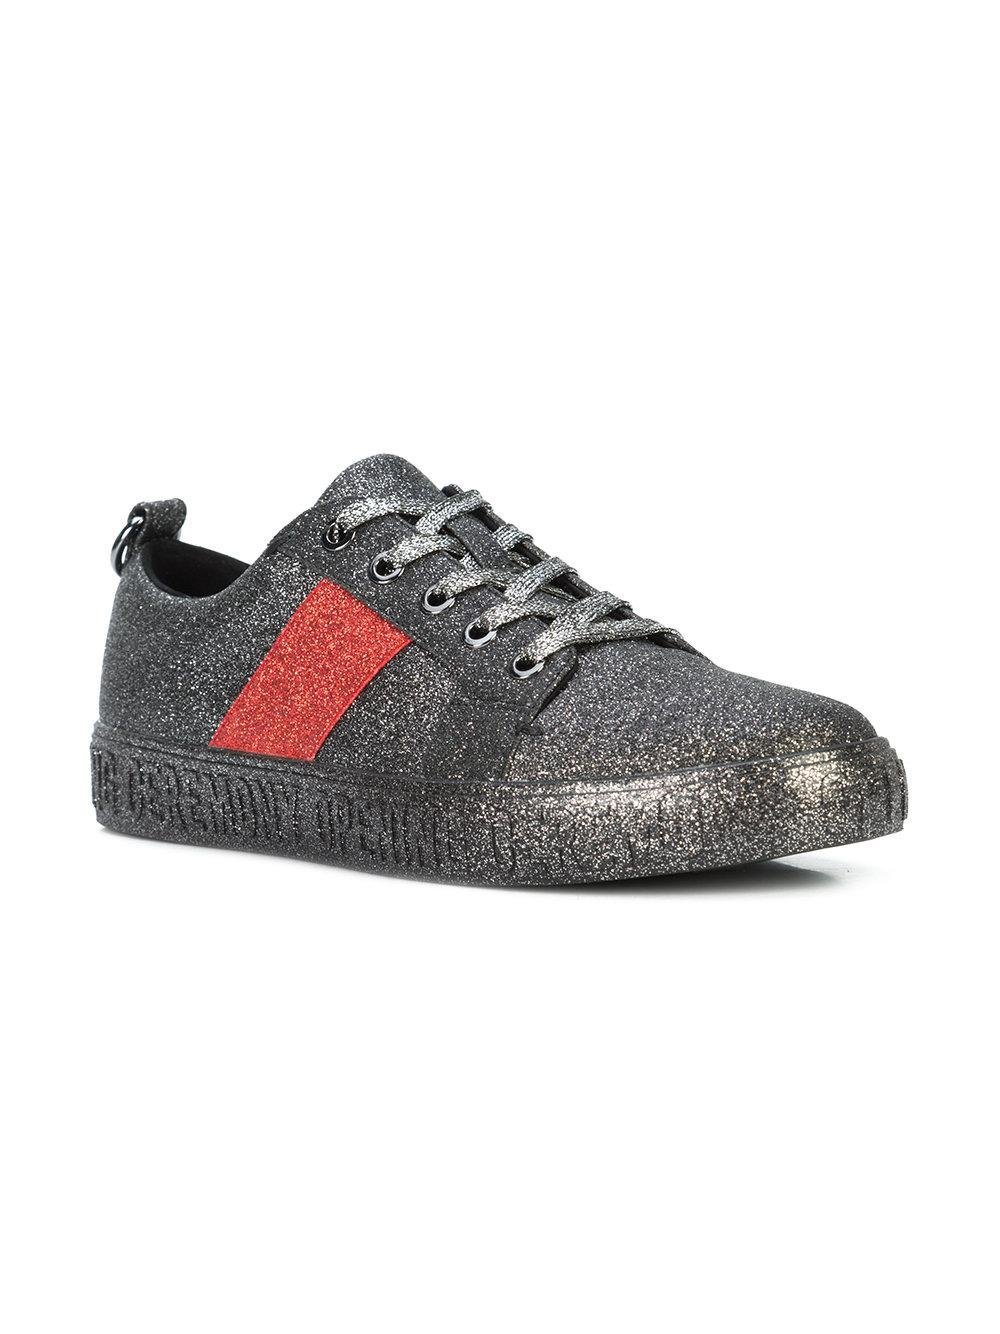 glitter flat sneakers - Black Opening Ceremony